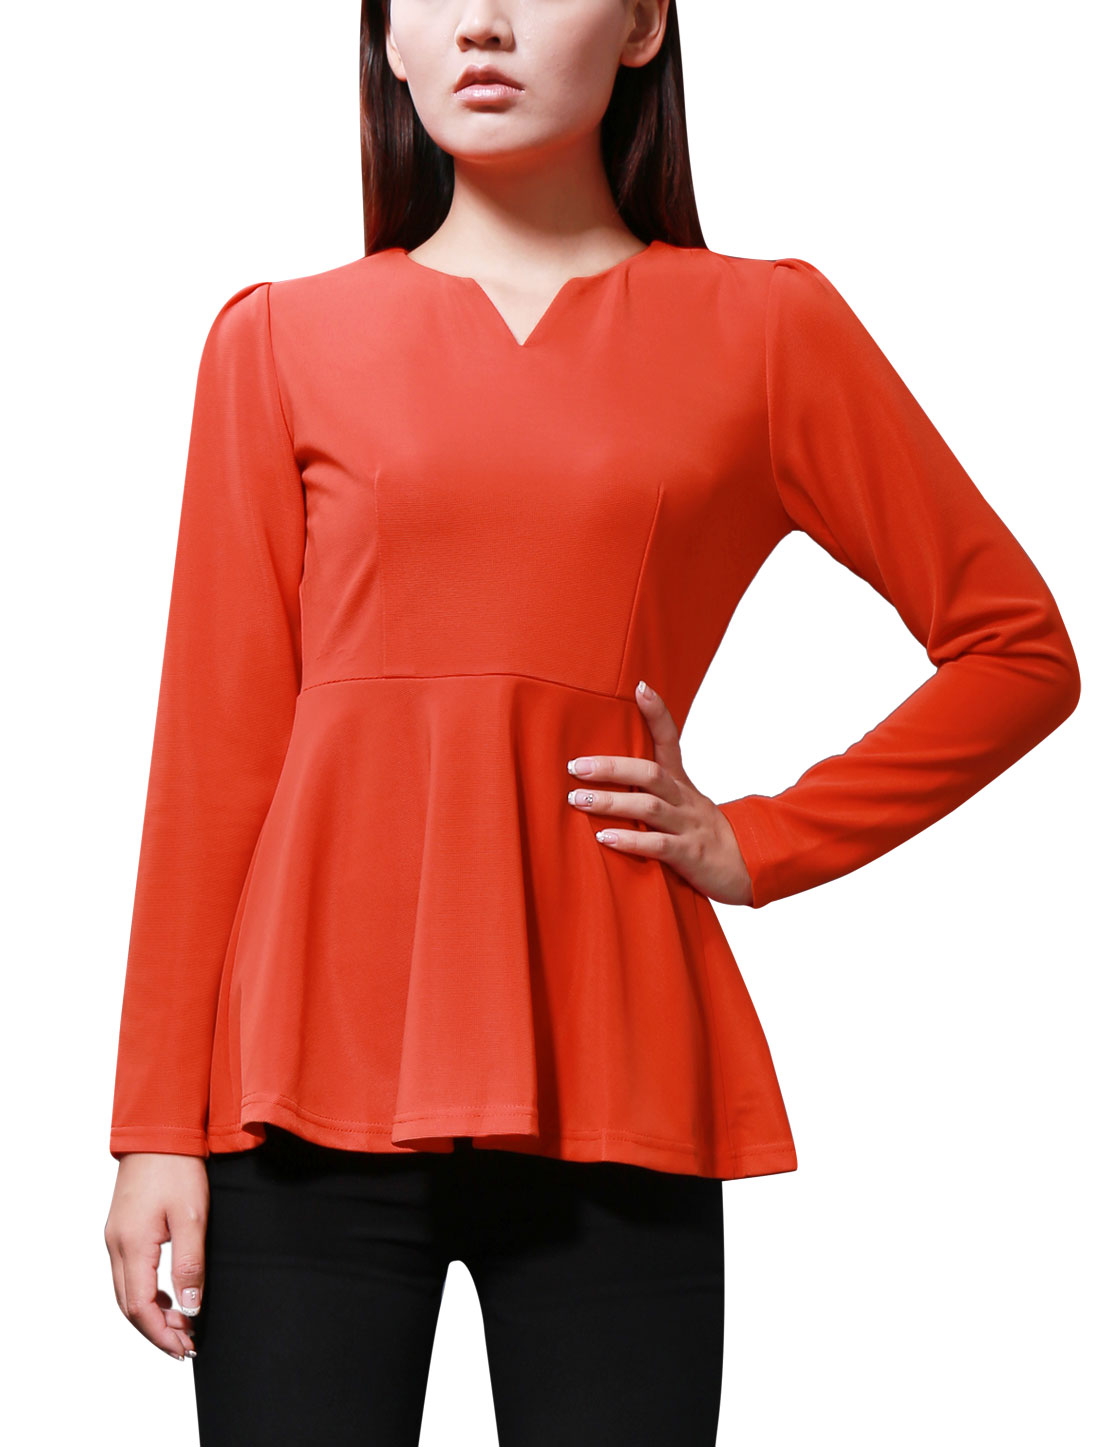 Ladies Orange Zip Closure Back Ruffled Fashional Autumn Tee Shirt XS